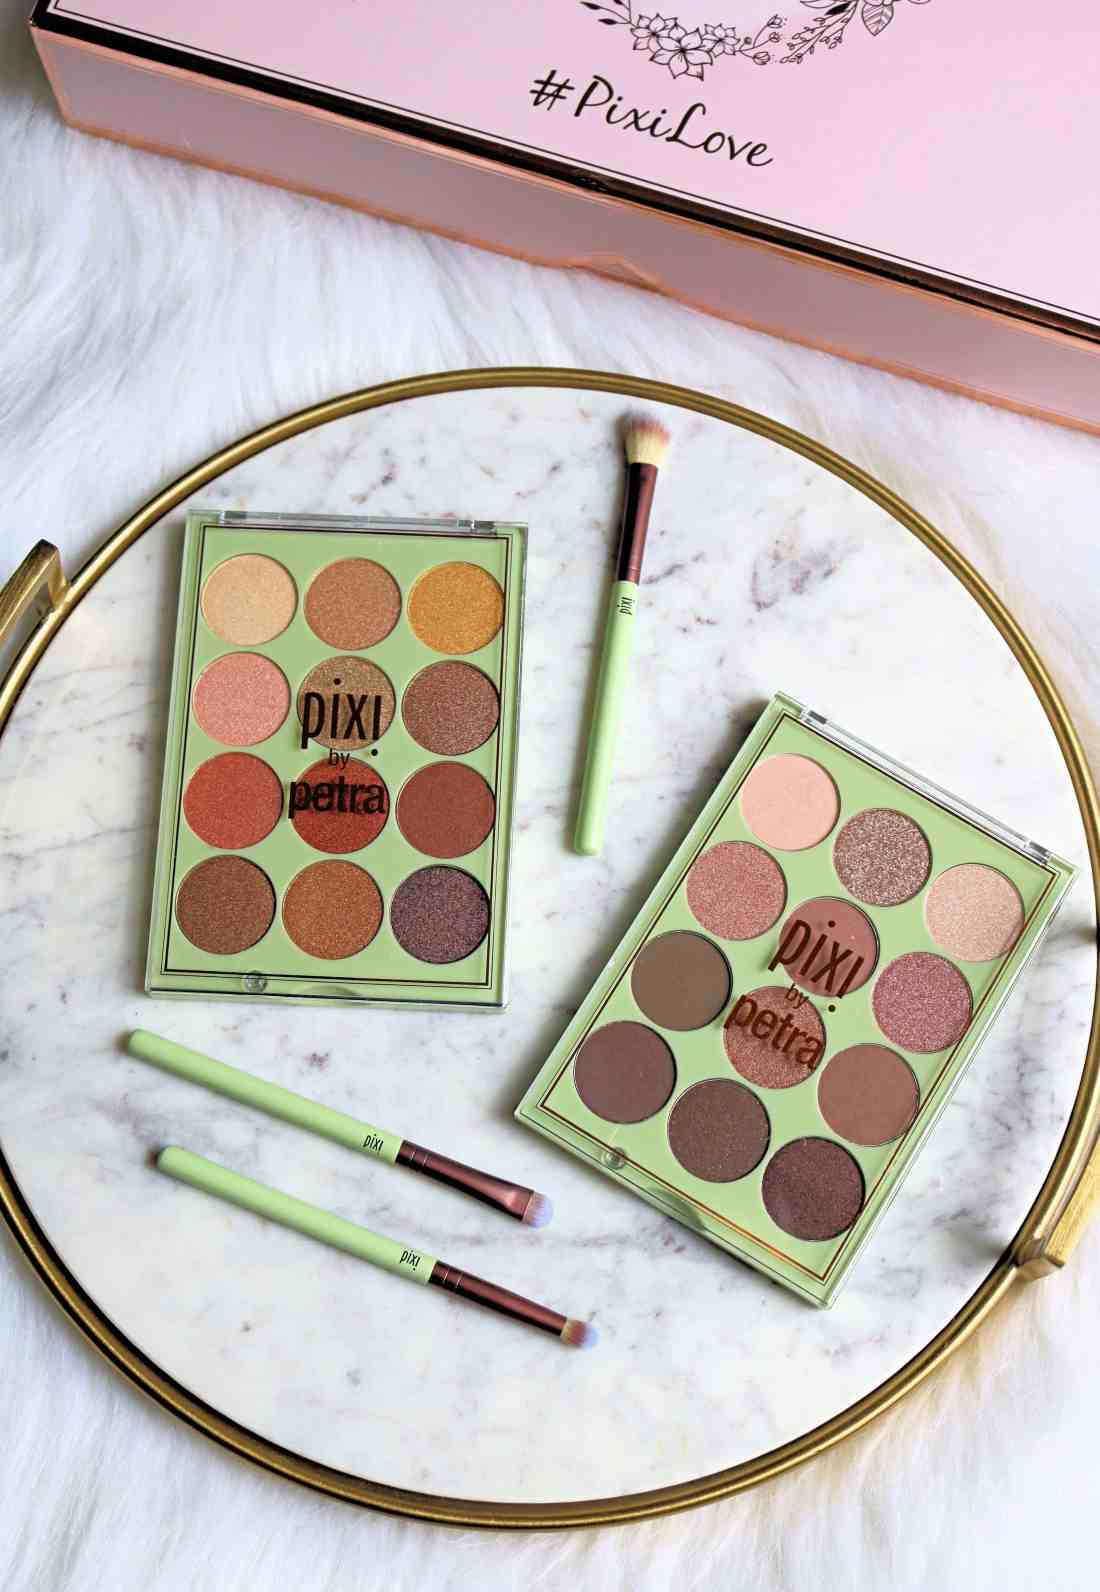 The newest Pixi eyeshadow palettes are just as gorgeous as you'd imagine them to be! Check out my full review of these affordable Pixi Beauty eyeshadow palettes with swatches of all 24 shades. #pixi #pixibeauty #pixibypetra #eyeshadowpalettes